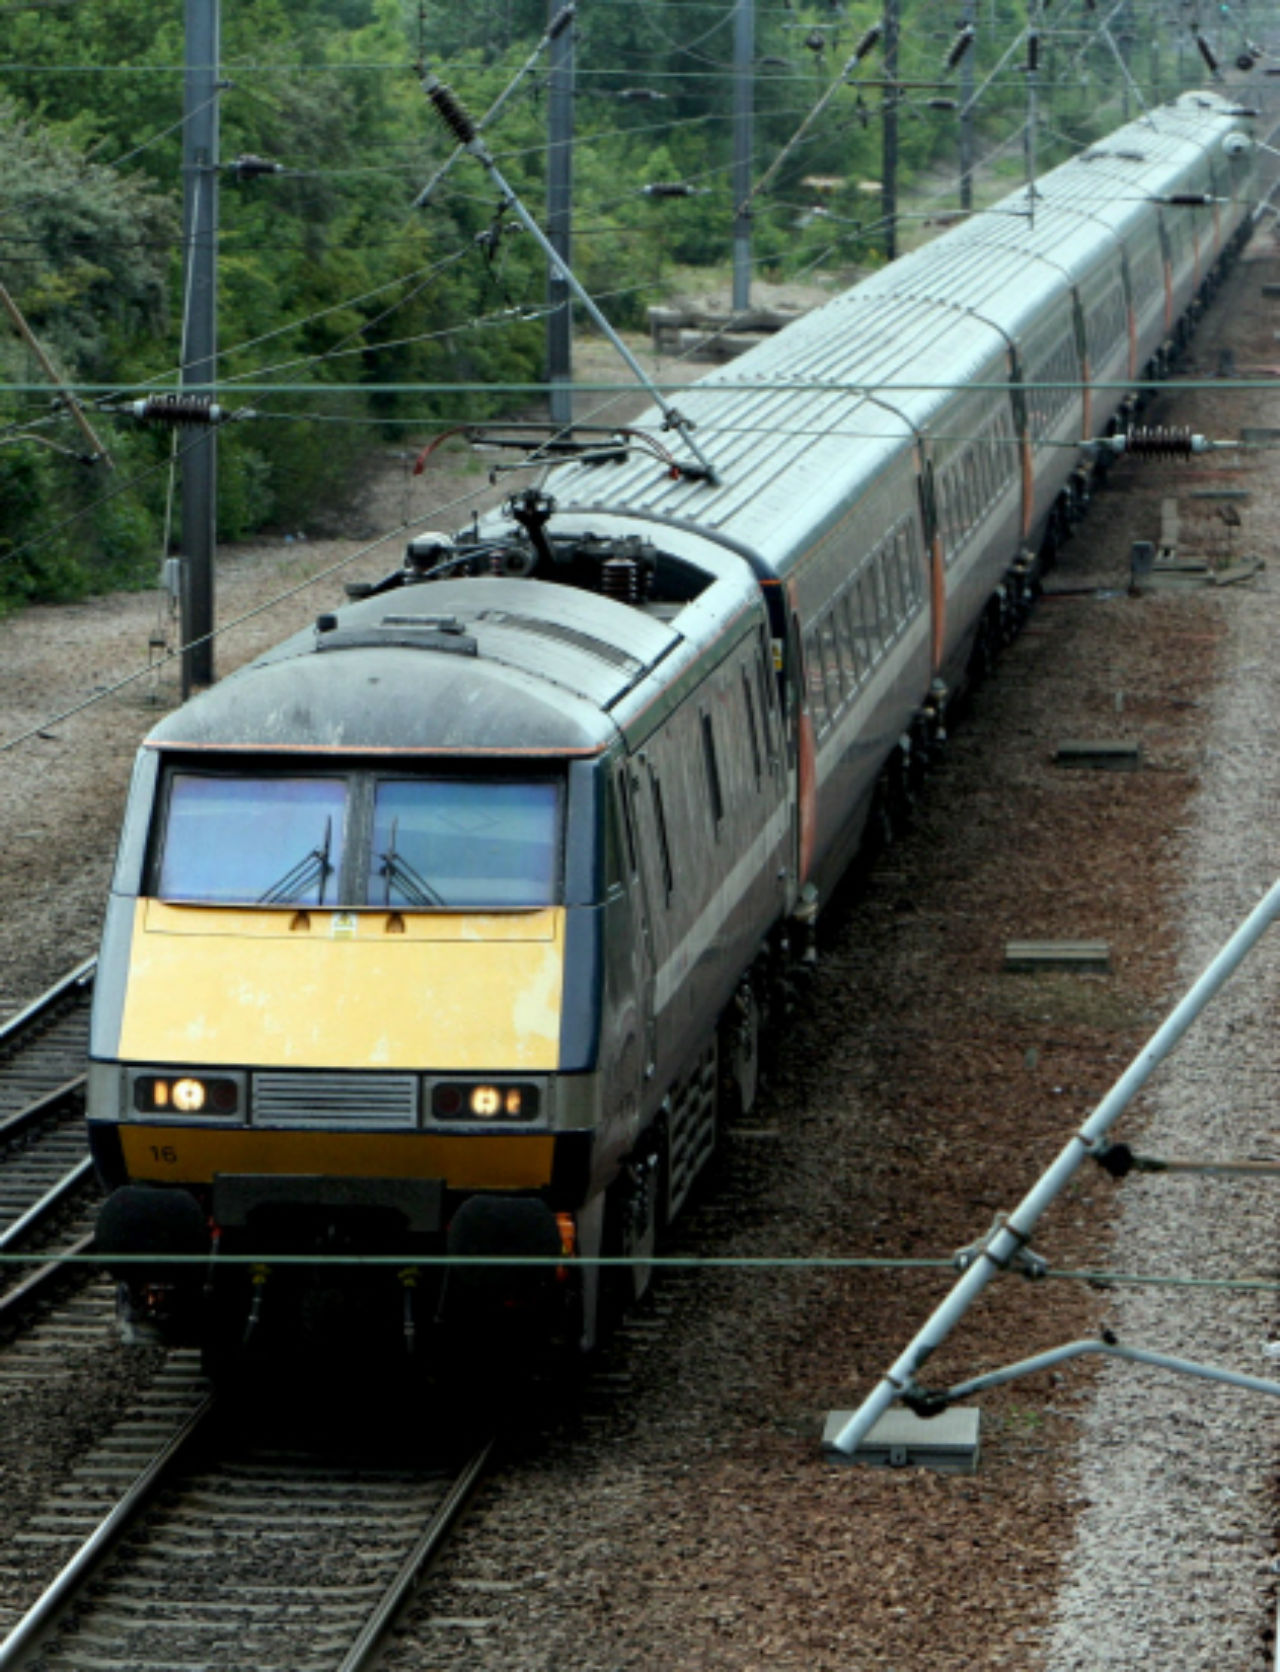 Train services between London and Gloucester face major delays